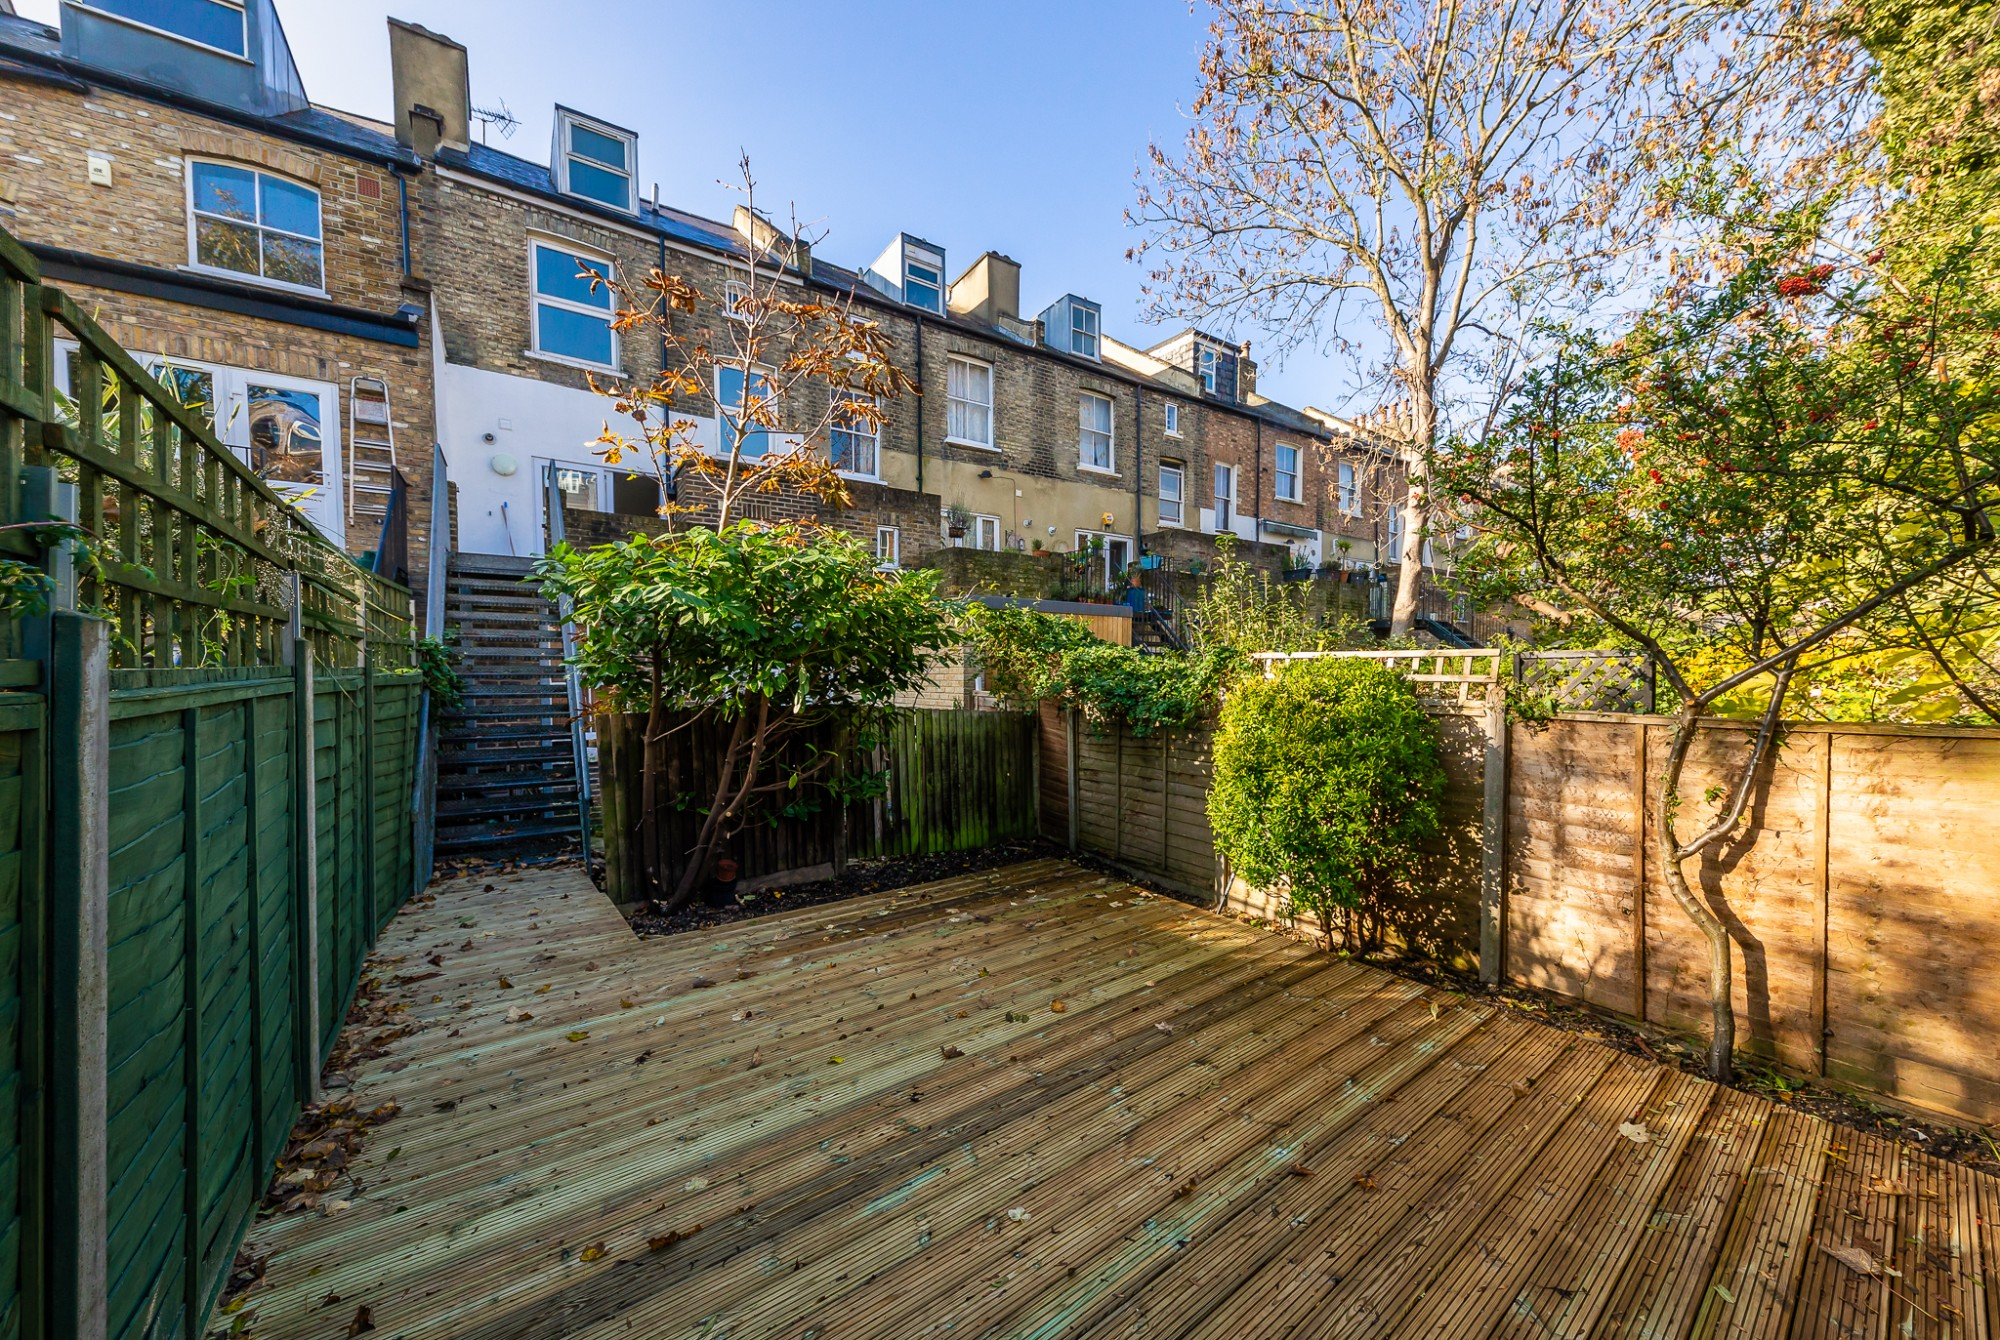 Images for Charteris Road N4 3AB EAID:931013c273837aec744cf2e7889cb460 BID:1